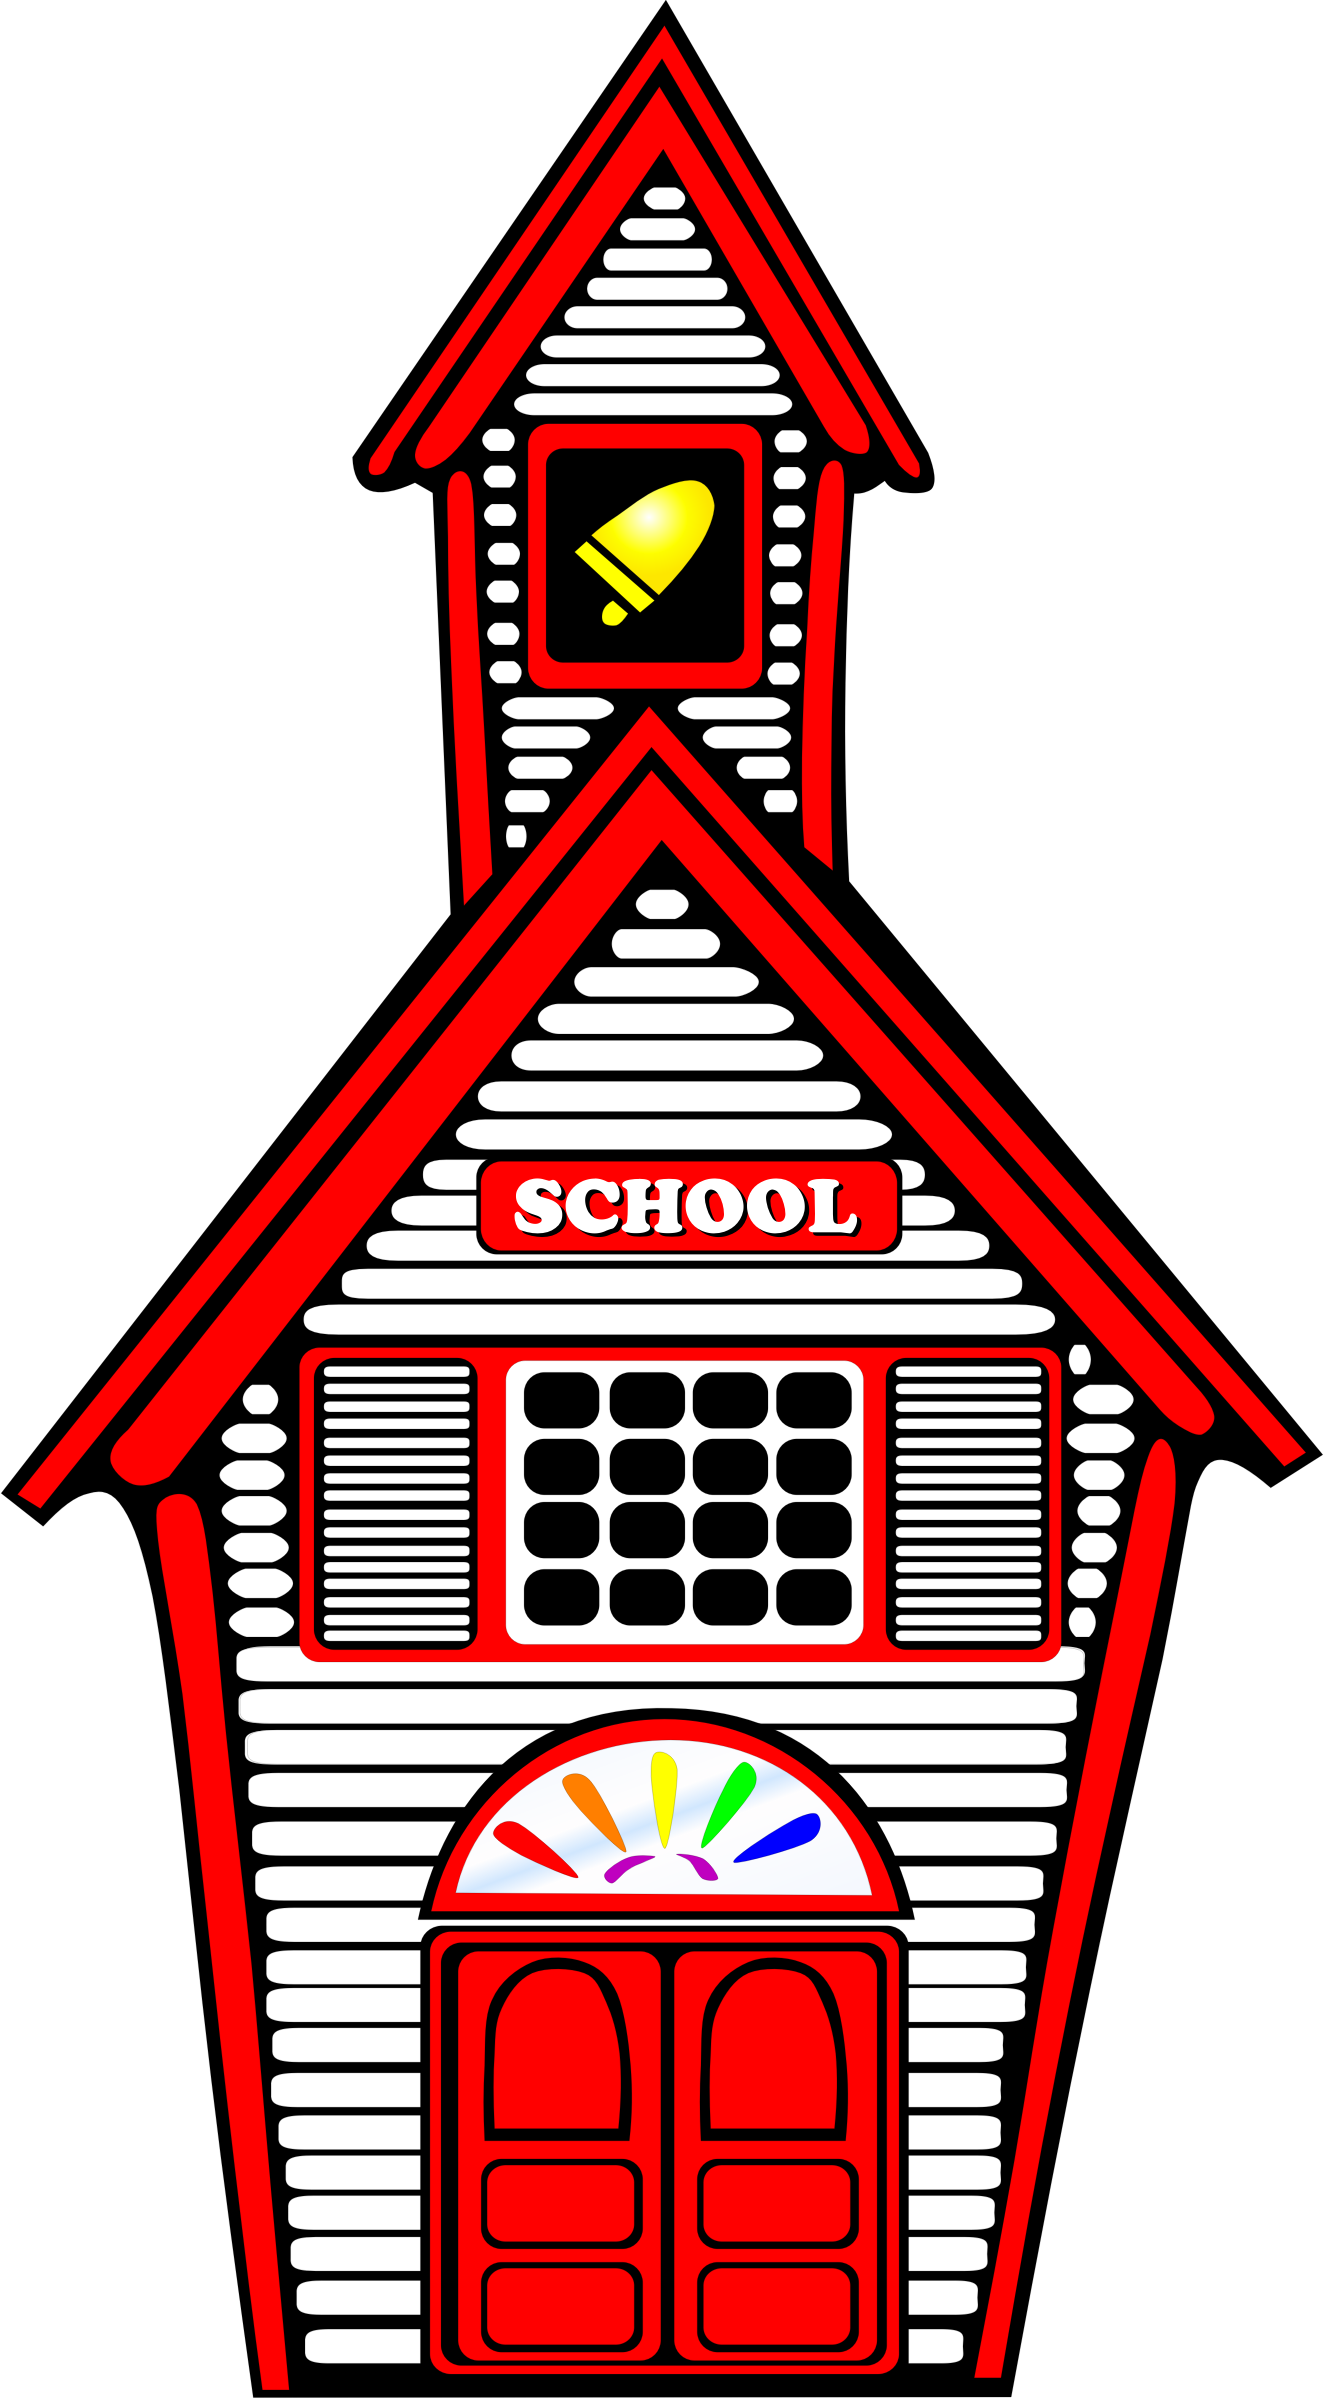 School house png. Clipart white schoolhouse big